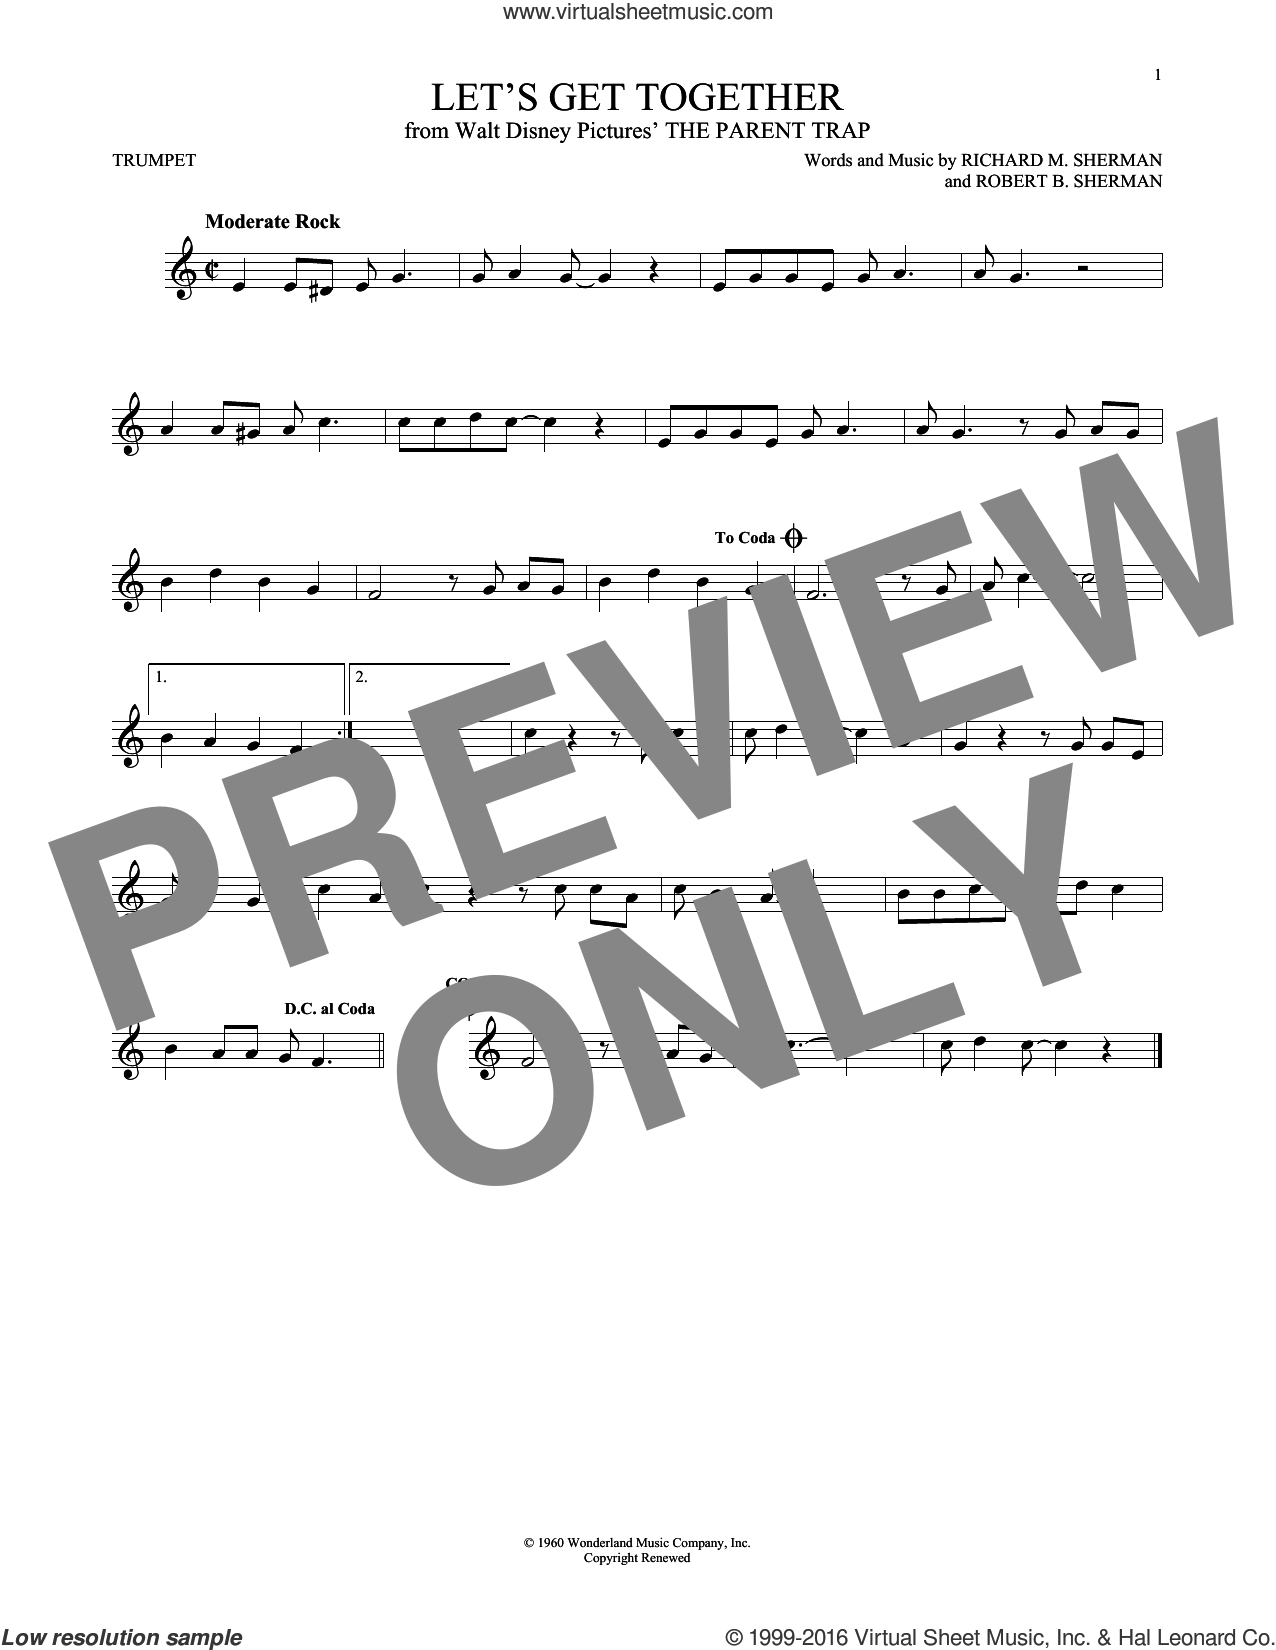 Let's Get Together sheet music for trumpet solo by Hayley Mills, Richard M. Sherman and Robert B. Sherman, intermediate skill level